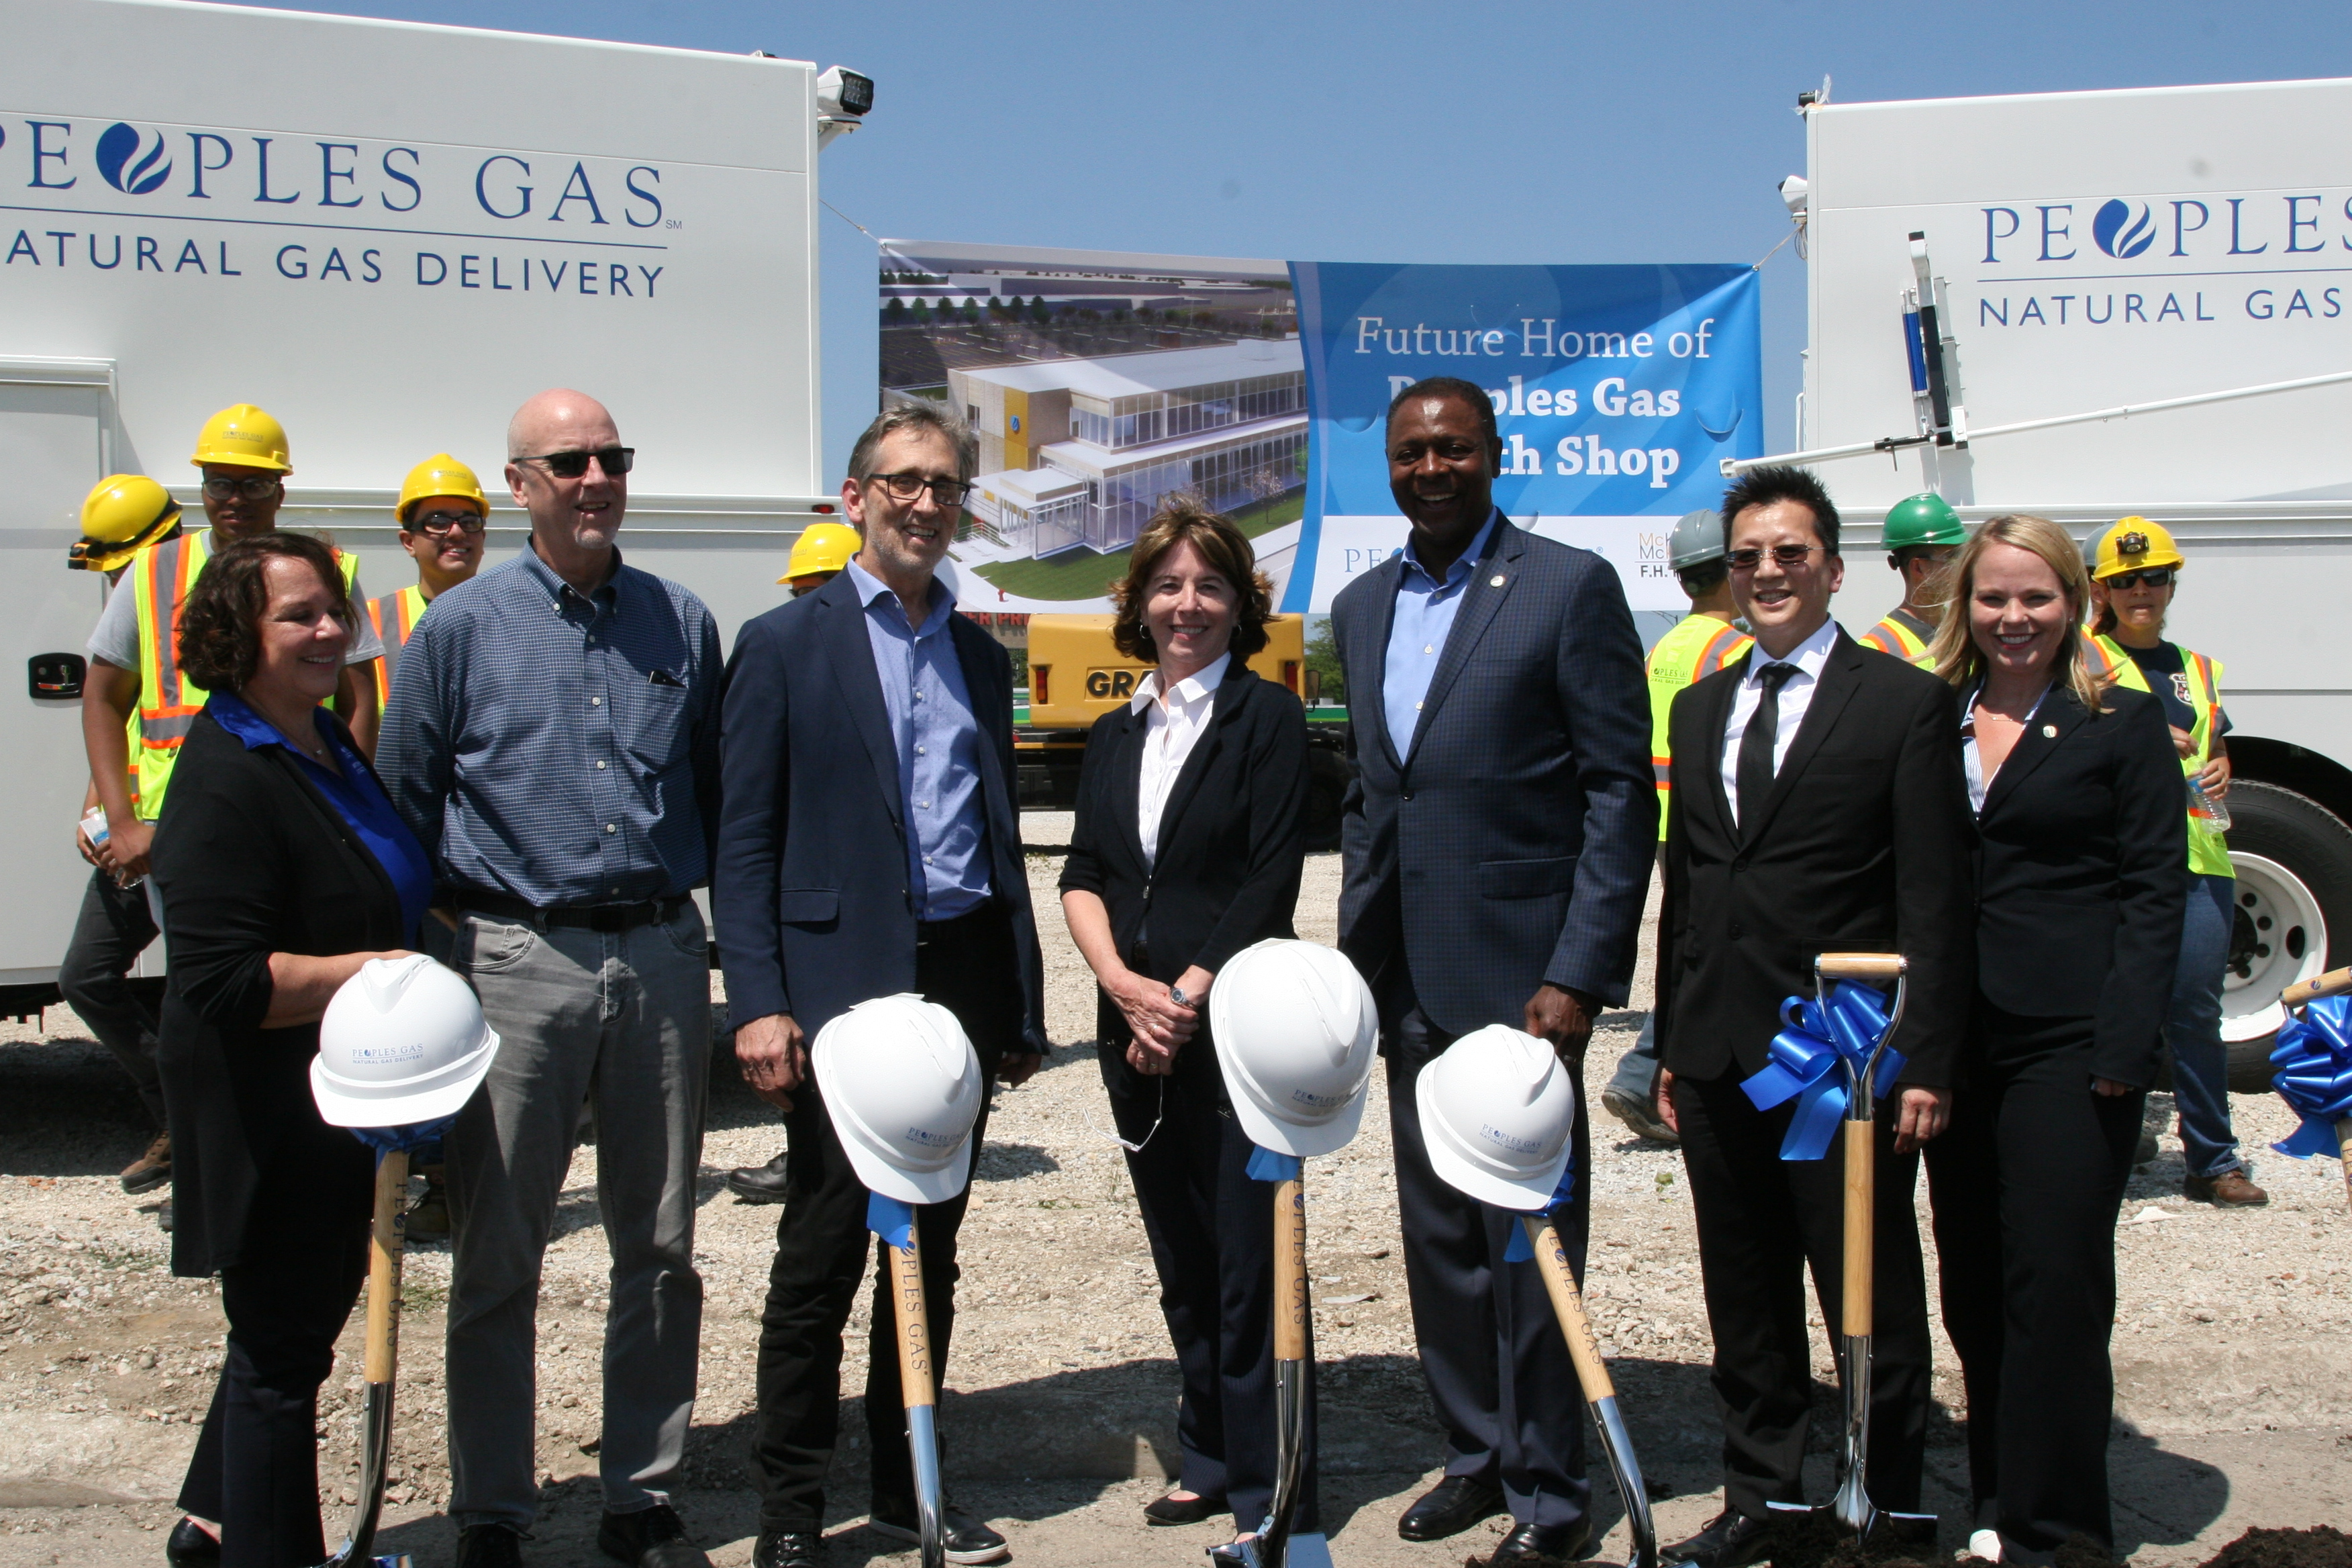 Peoples-Gas-North-Shop-groundbreaking.JP